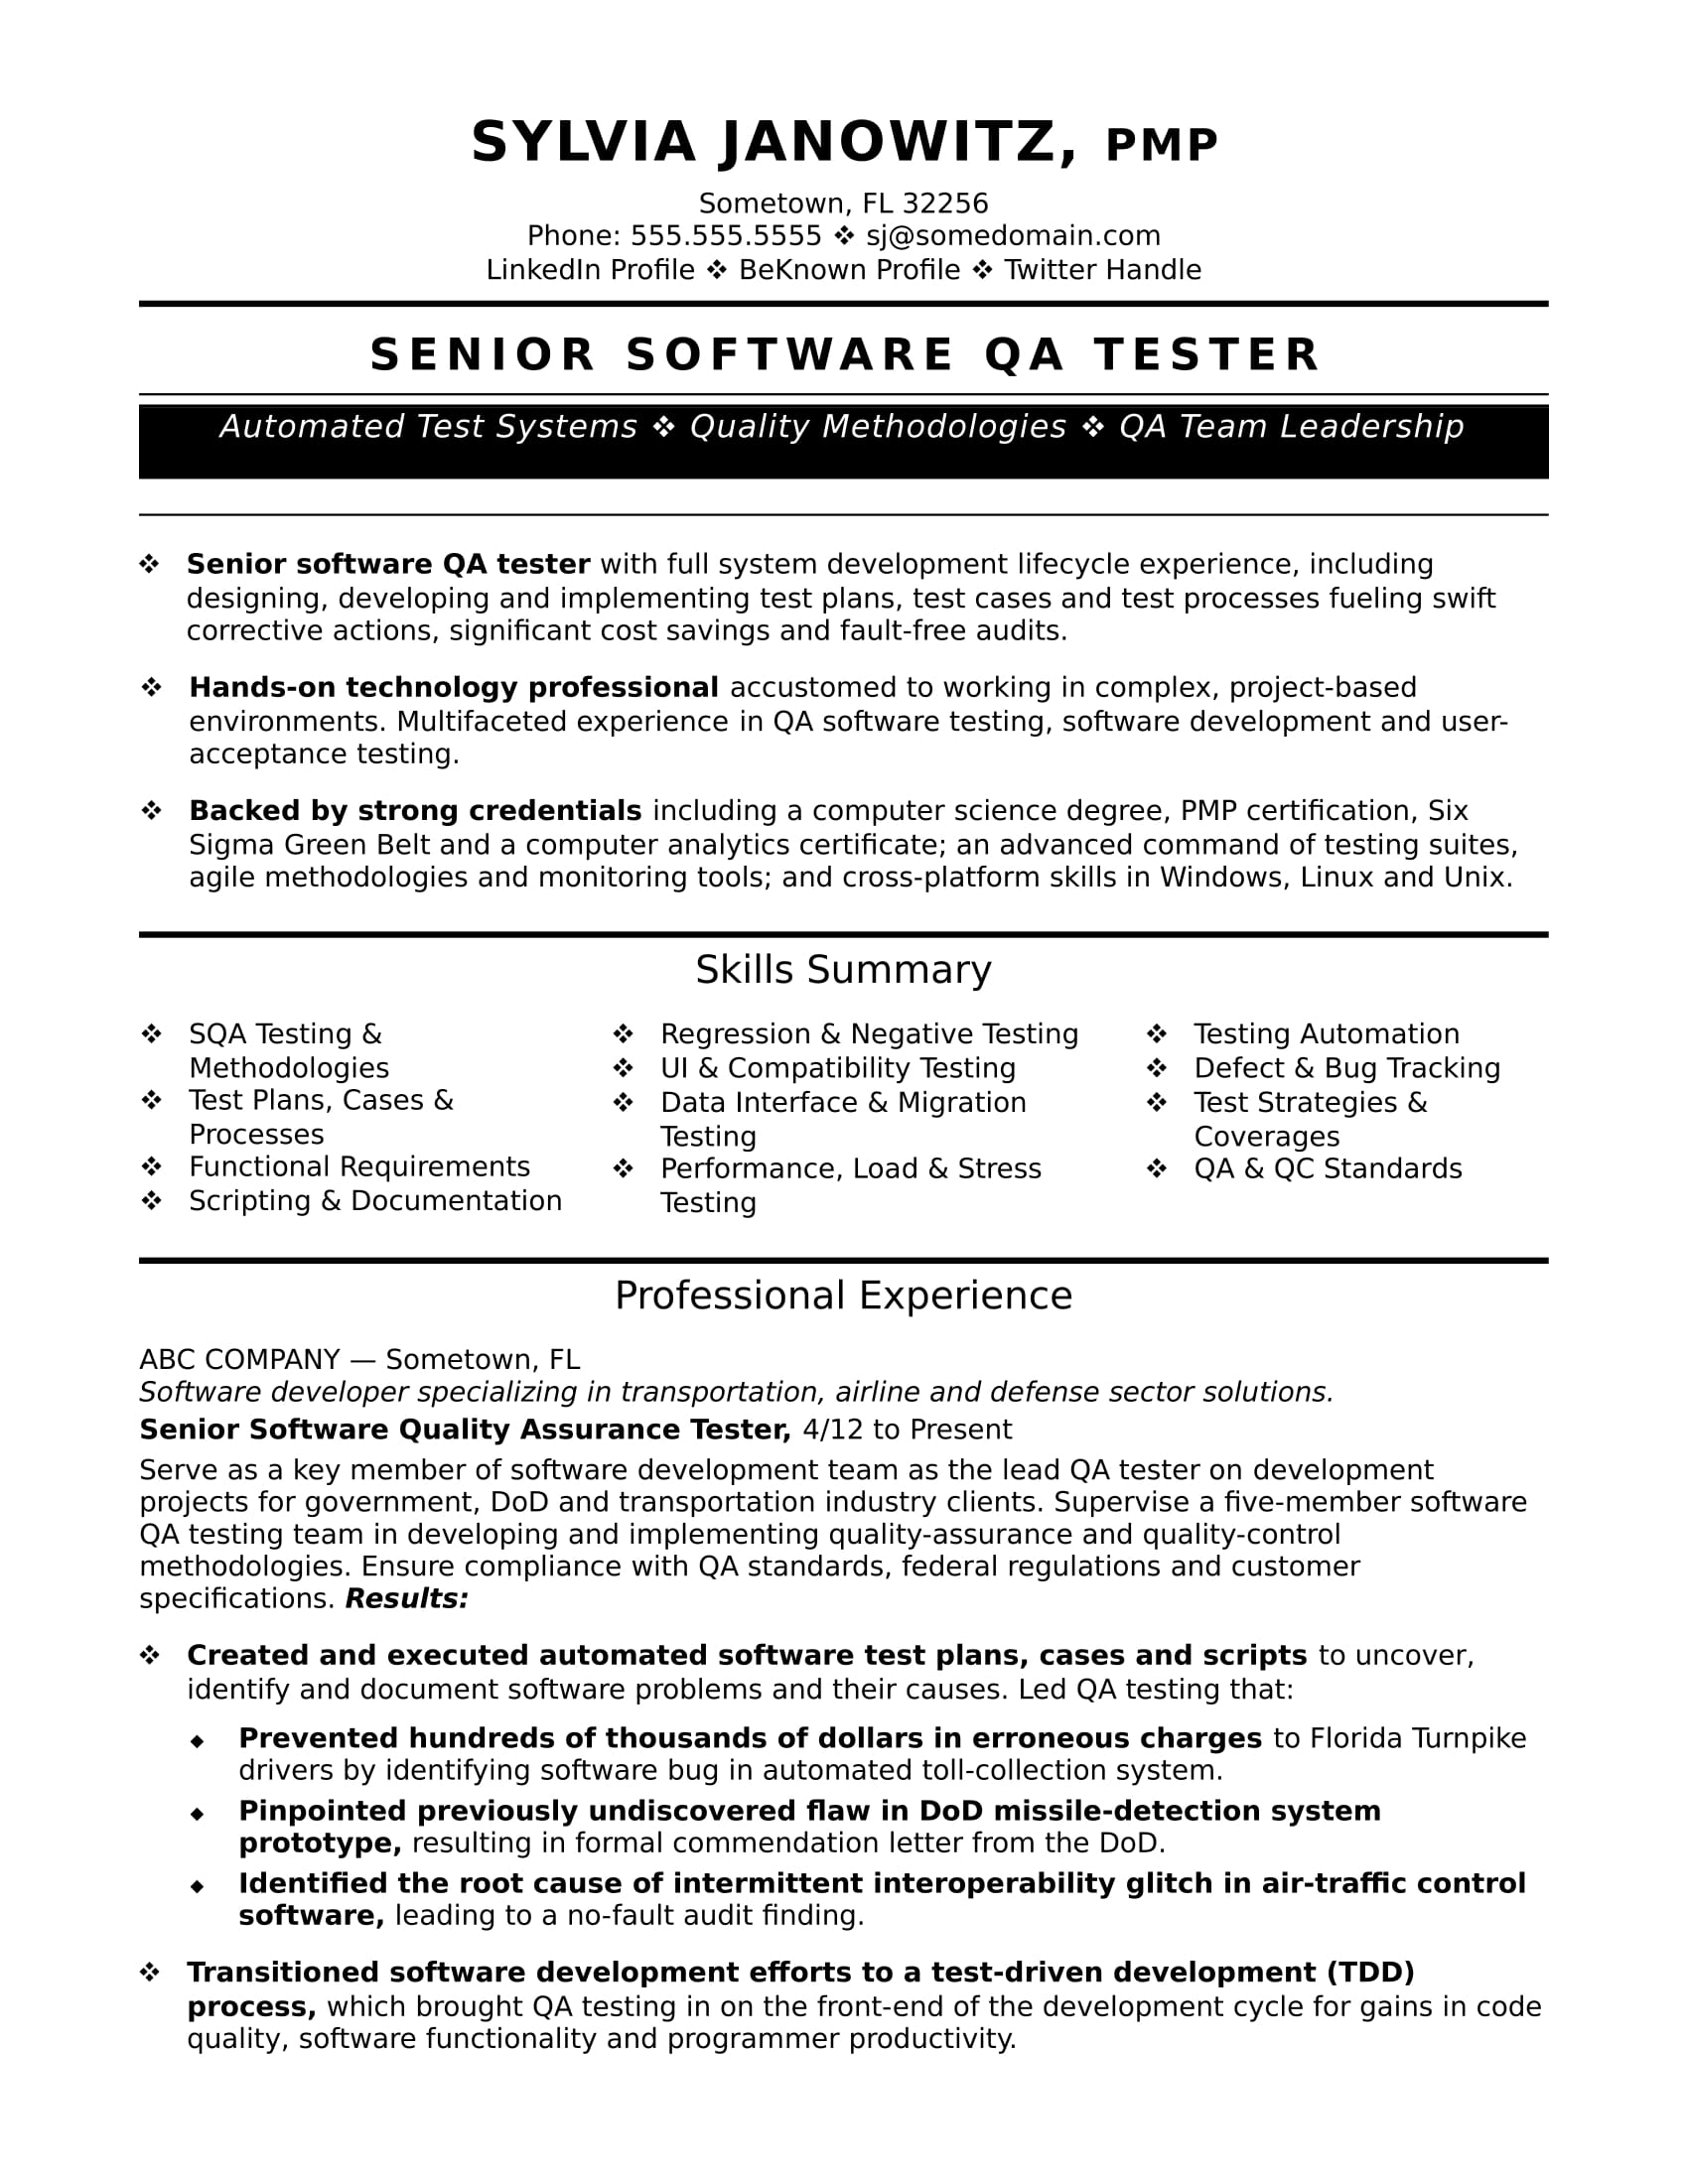 experienced qa software tester resume sample monster with years experience strong Resume Resume With 2 Years Experience